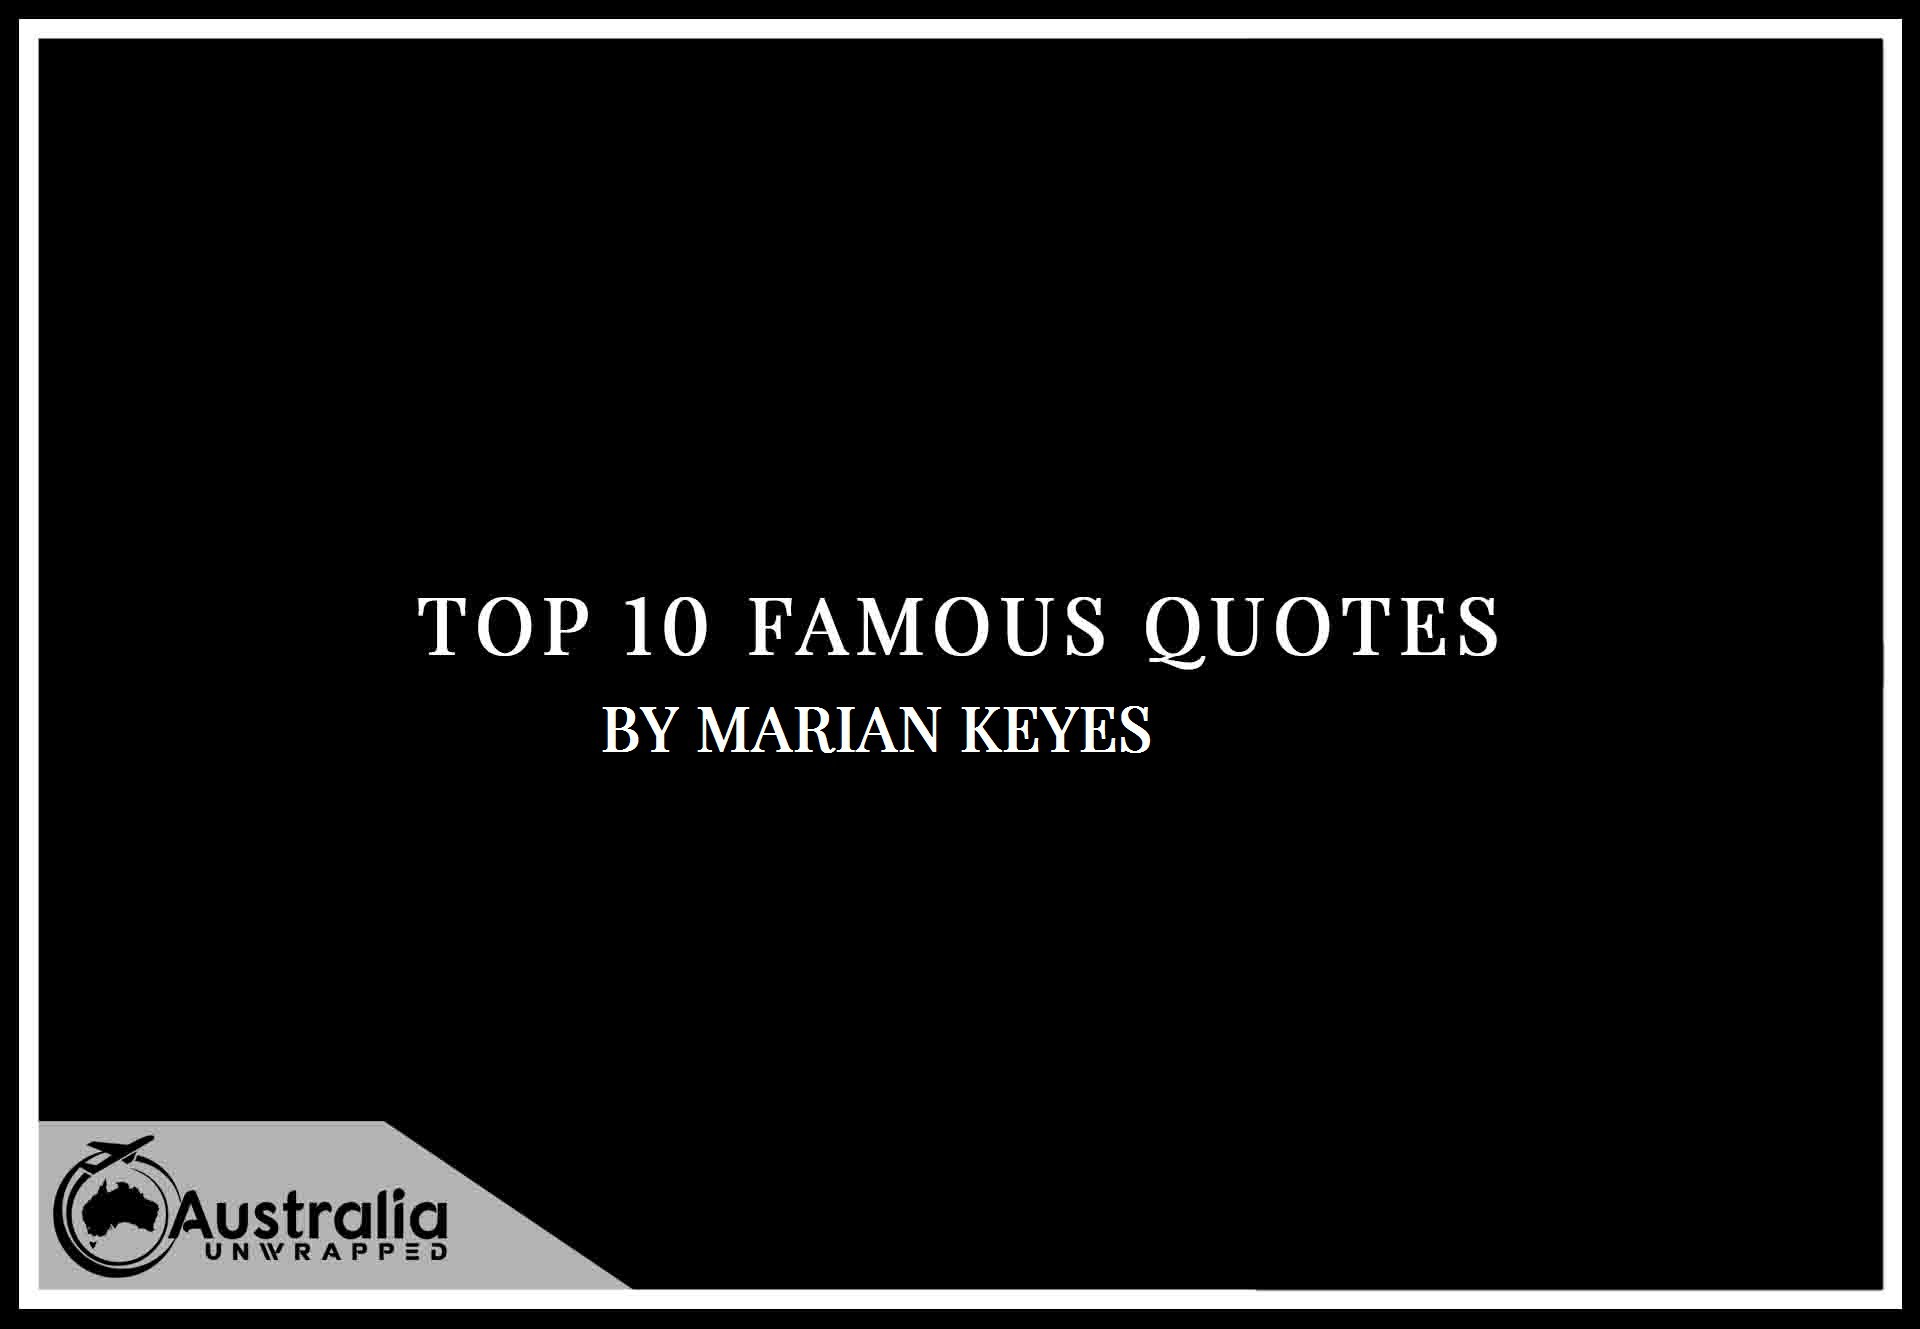 Marian Keyes's Top 10 Popular and Famous Quotes